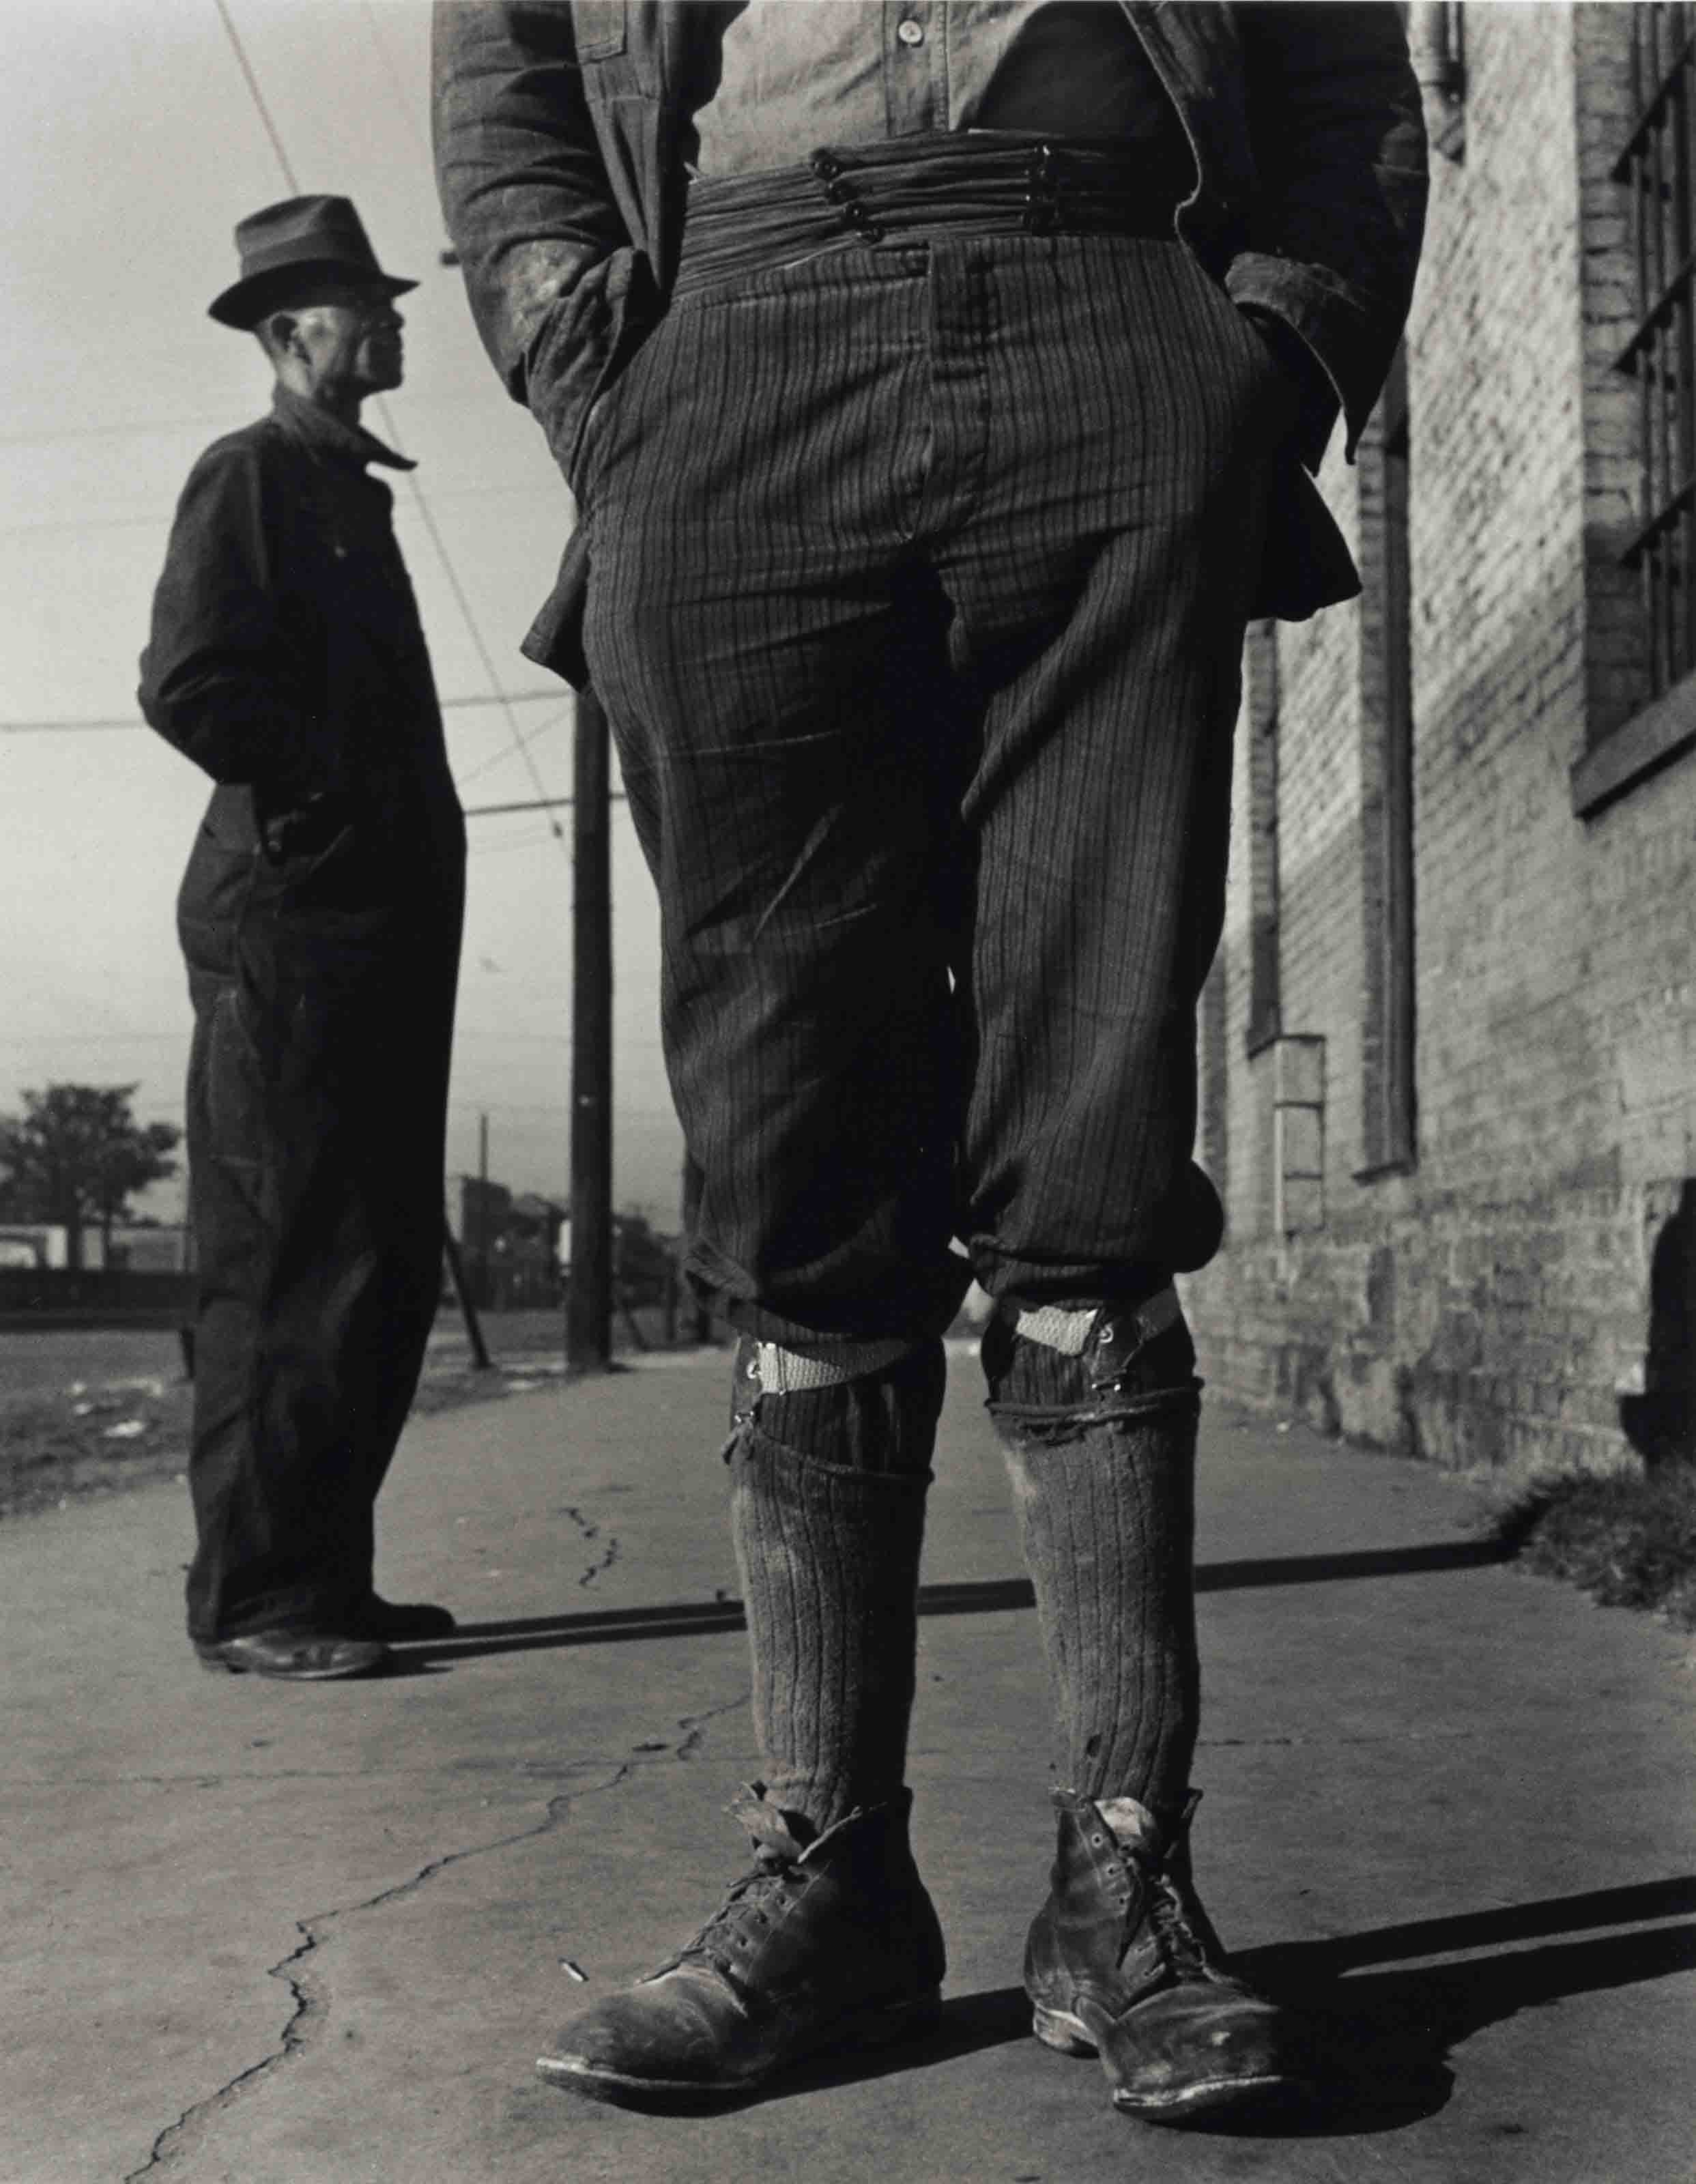 Mobile, Alabama, 1937